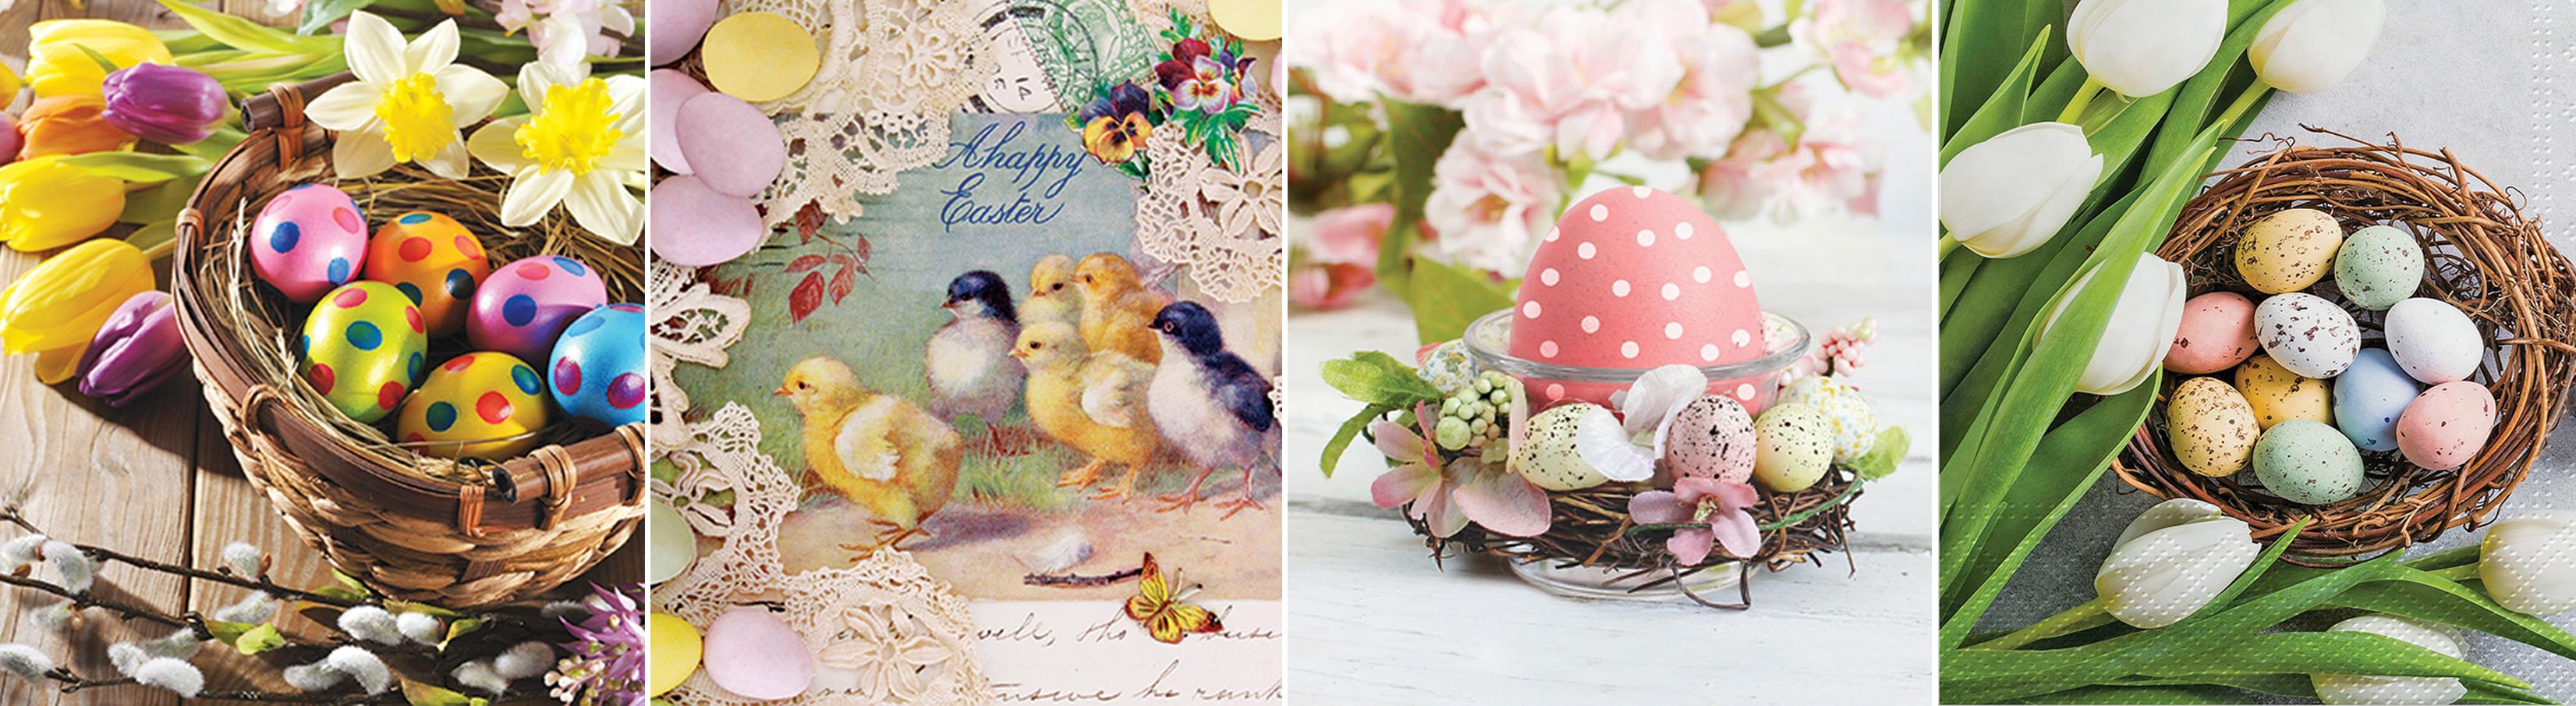 Gifts for easter dcor garden negle Images